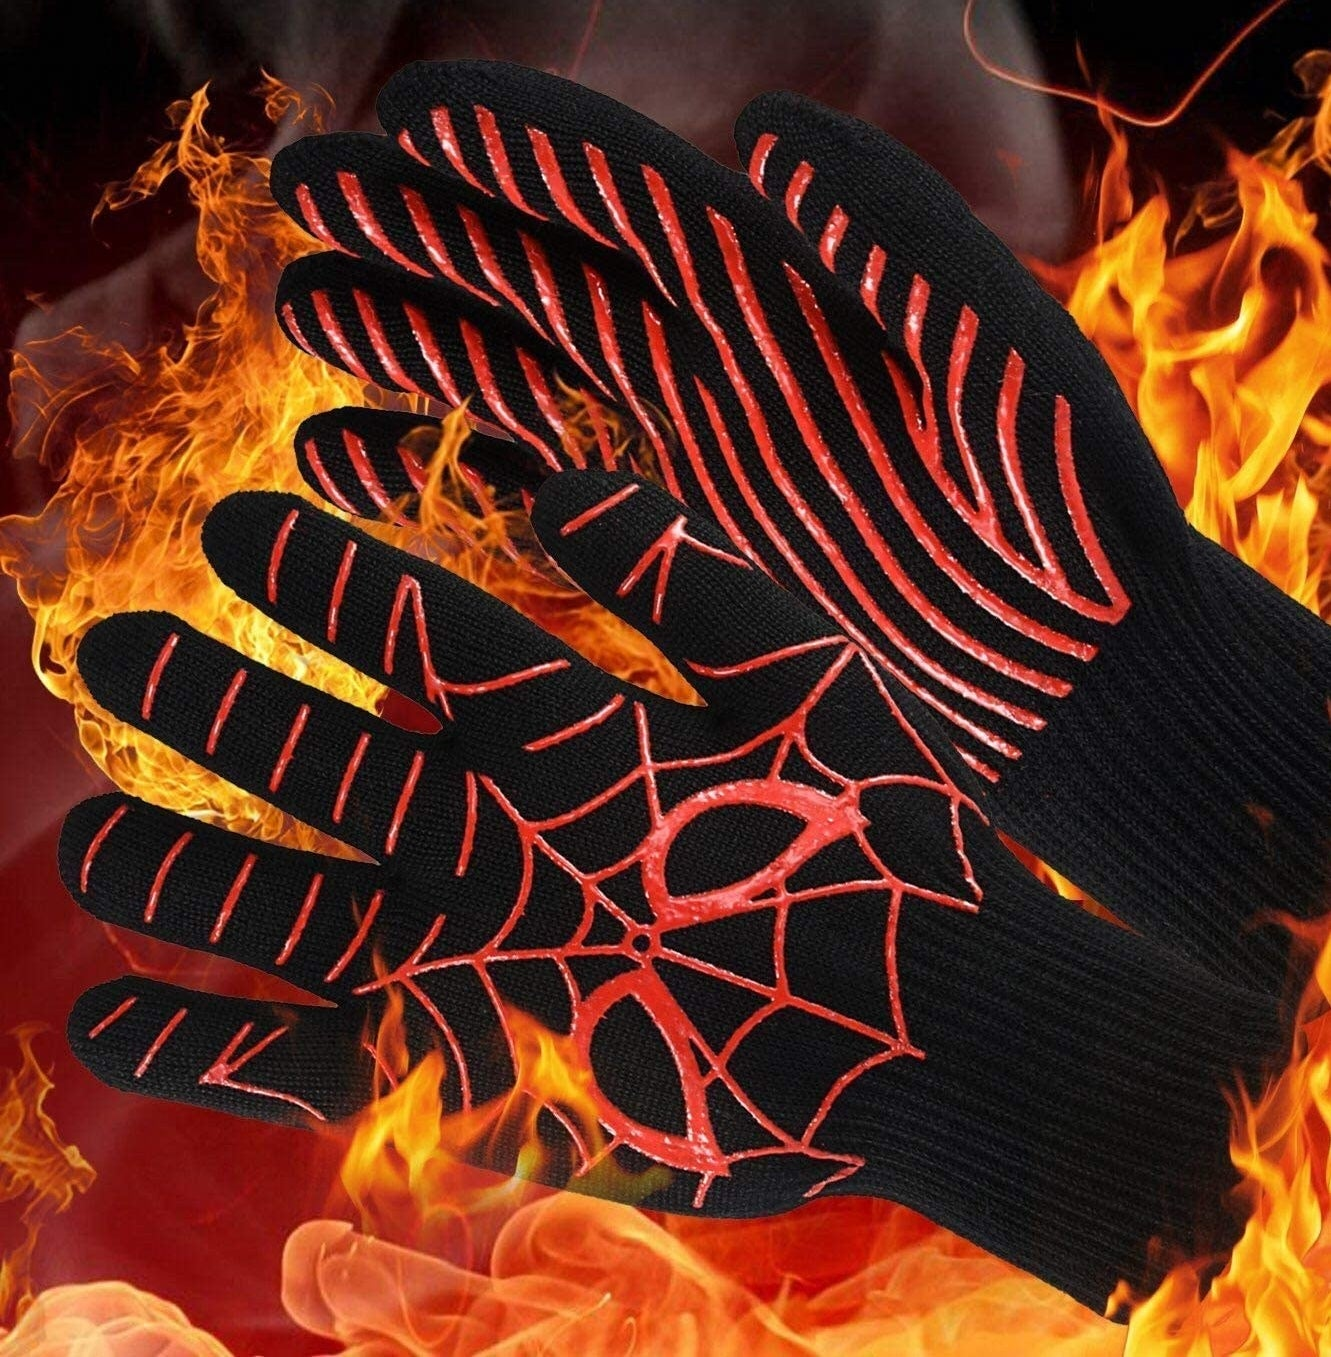 The oven gloves on a flame-covered background